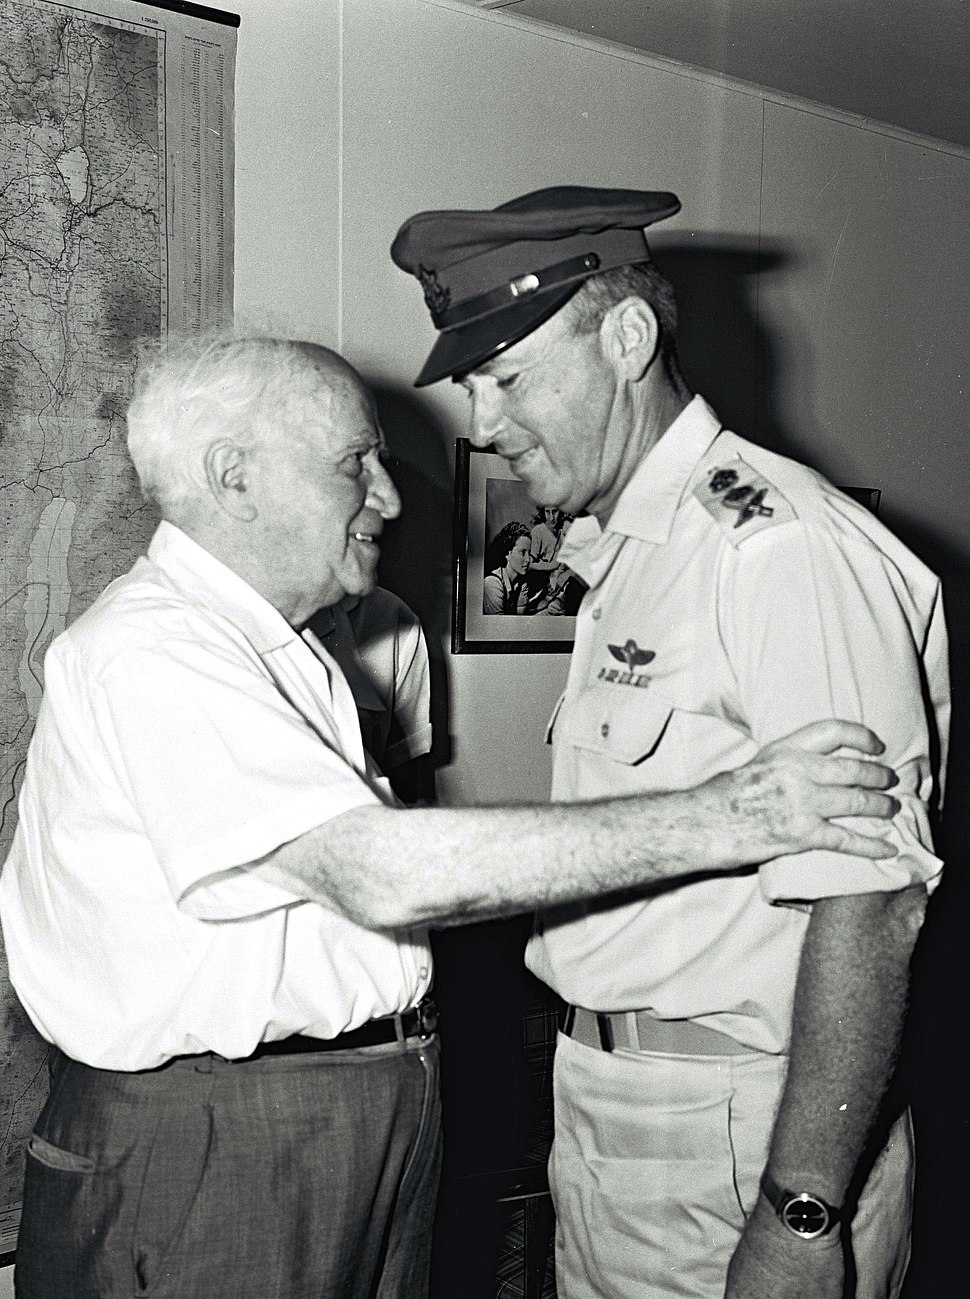 Flickr - Government Press Office (GPO) - MR. DAVID BEN GURION RECEIVING THE CHIEF OF STAFF YITZHAK RABIN WHO CAME TO CONGRATULATE HIM ON HIS 80TH BIRTHDAY